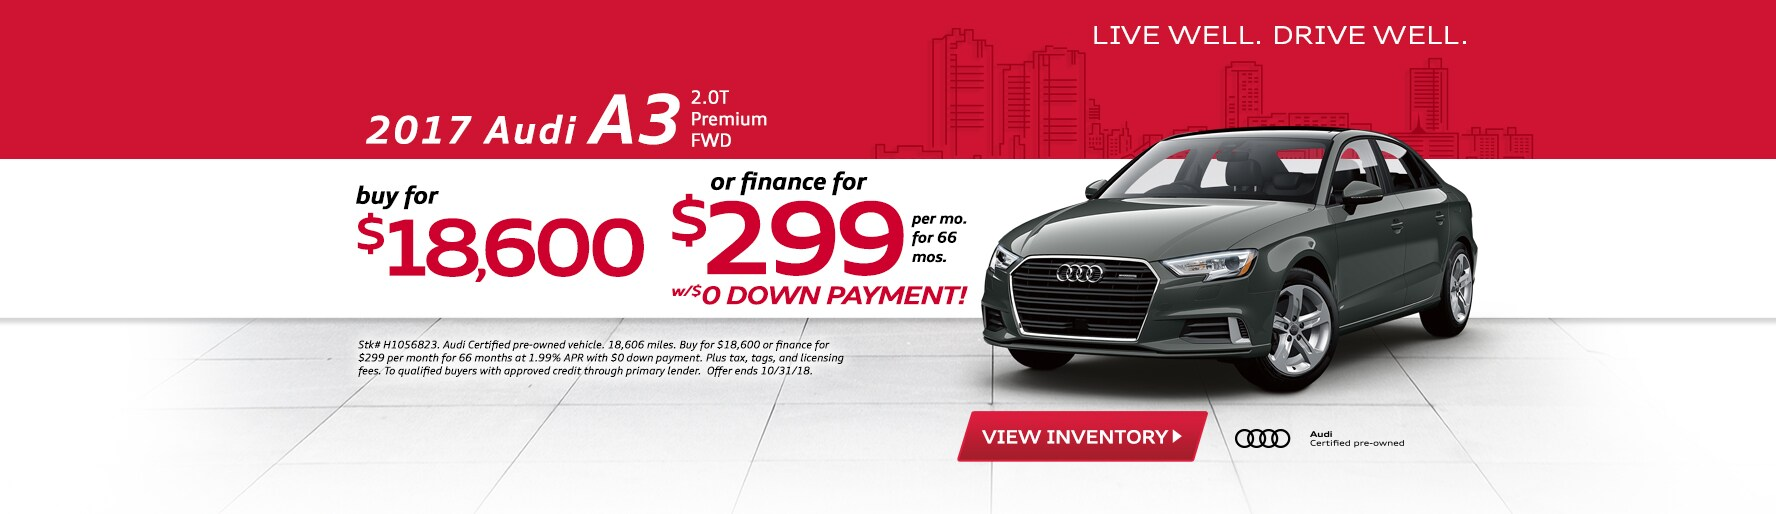 Audi Dealer Grapevine TX Audi Grapevine - Audi certified pre owned warranty review